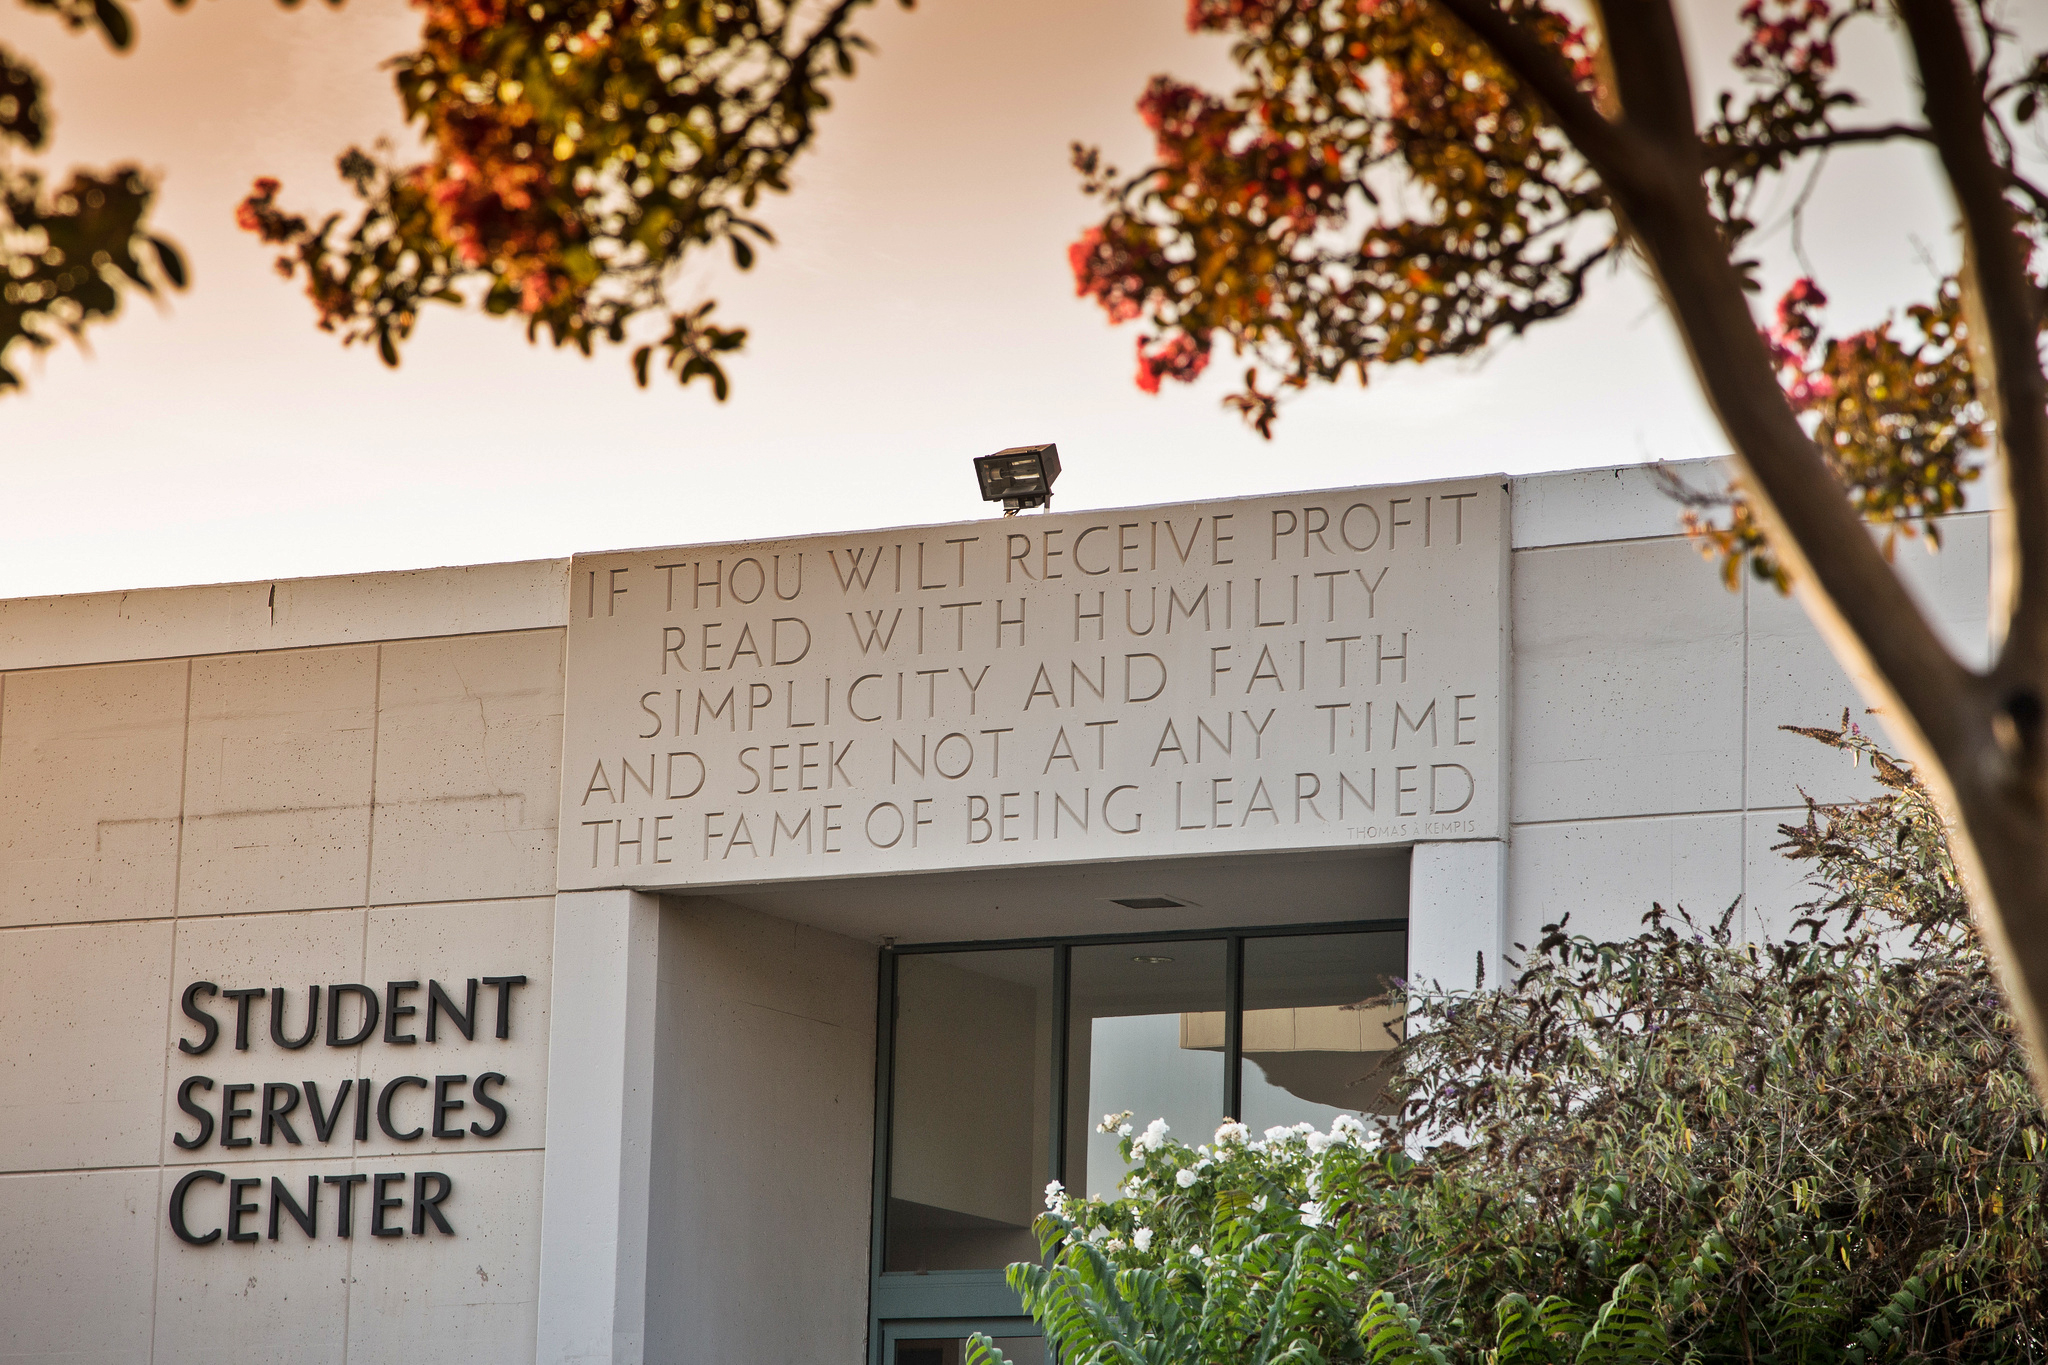 The student services building at Pasadena City College.